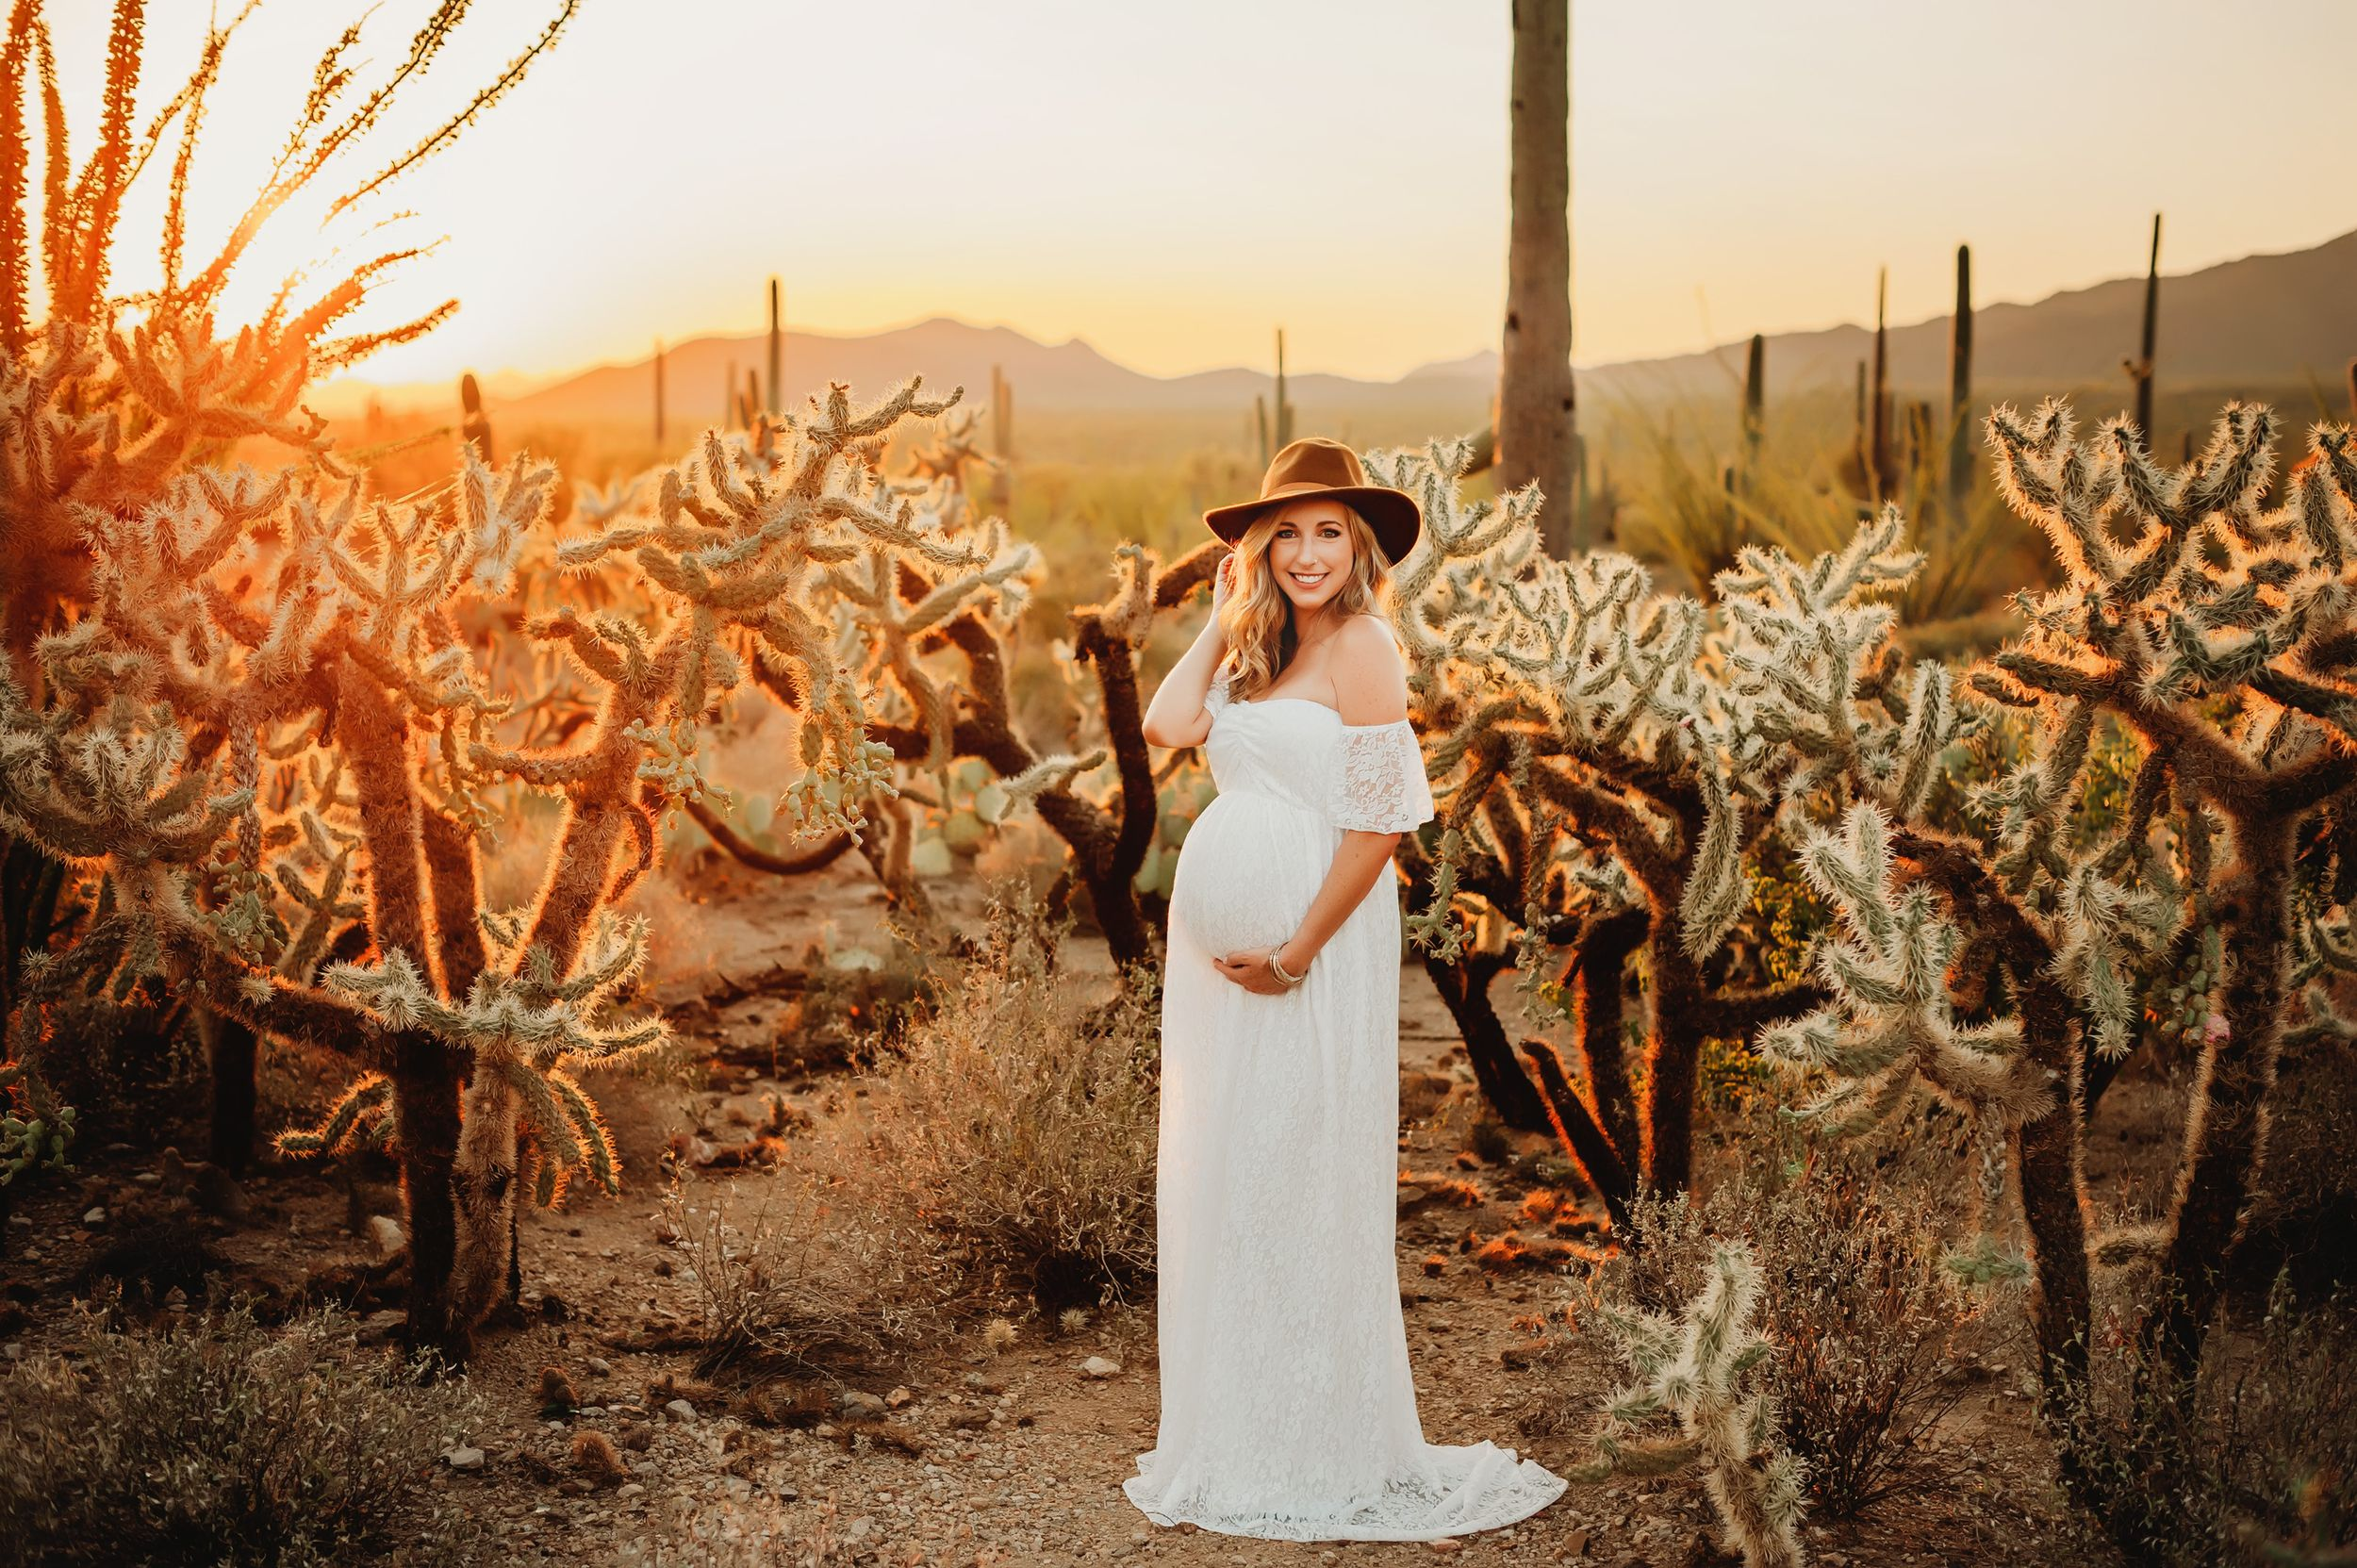 Marana-Tucson-Maternity-Photographer-in-Gates-Pass-AZ-01